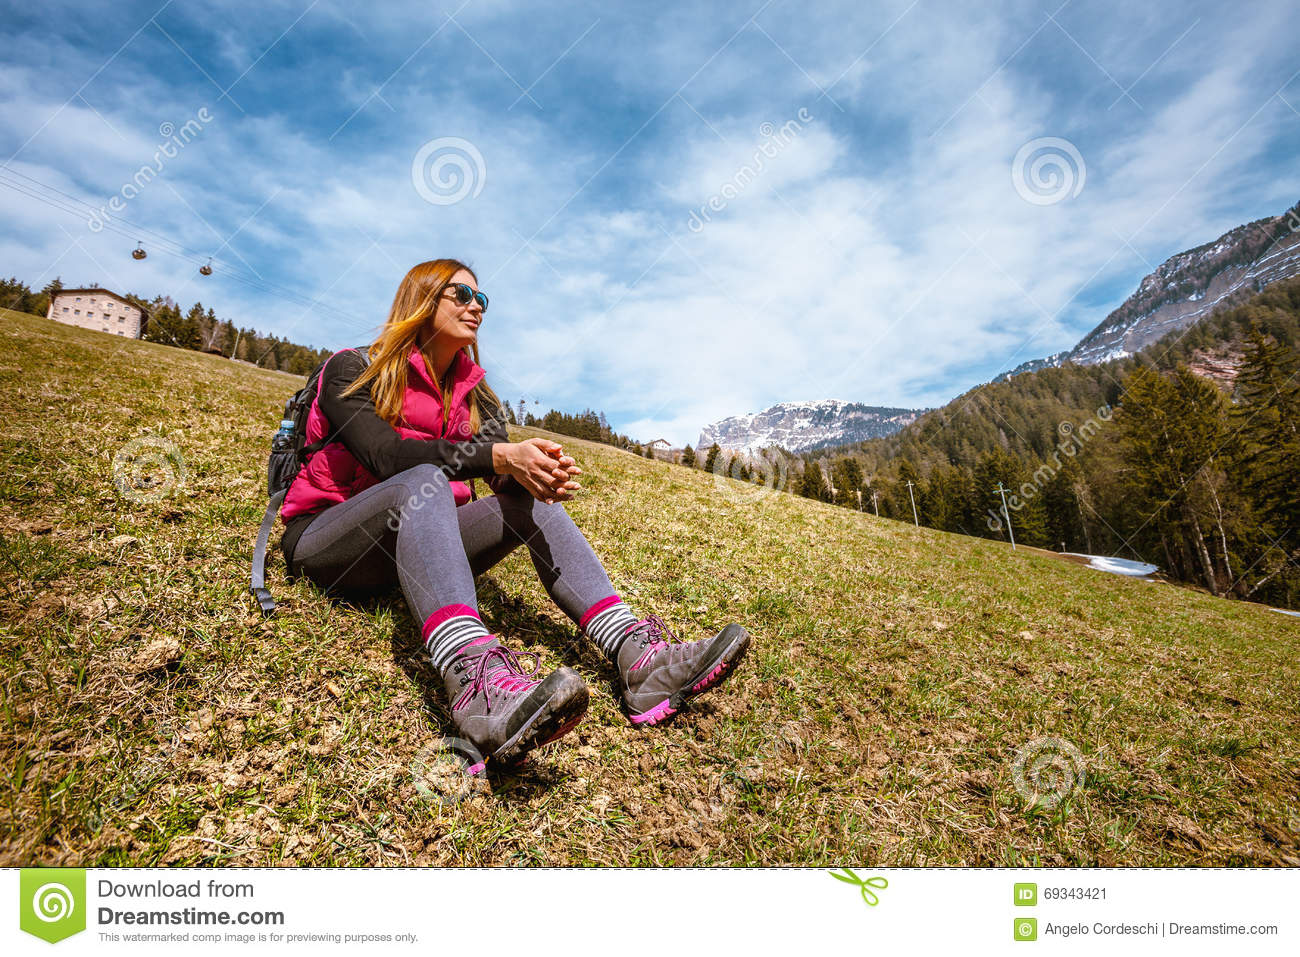 Mountain holidays. Hiking. Woman and nature